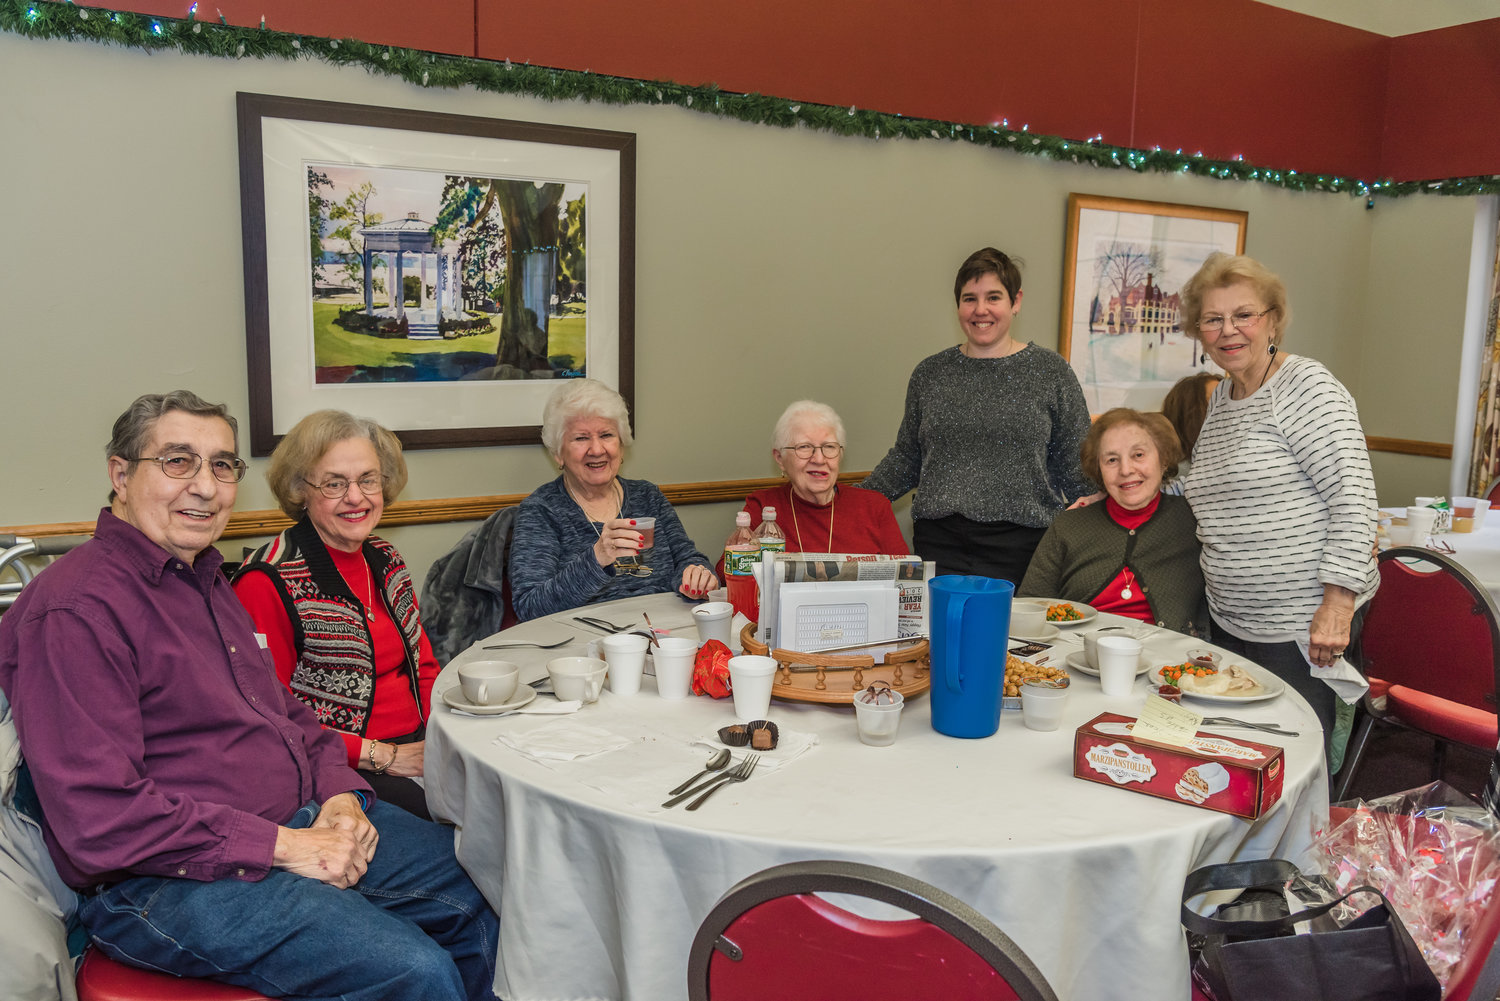 Glen Cove City Councilwoman Marsha Silverman, third from right, met with seniors at the luncheon to find out their hopes for the new year.